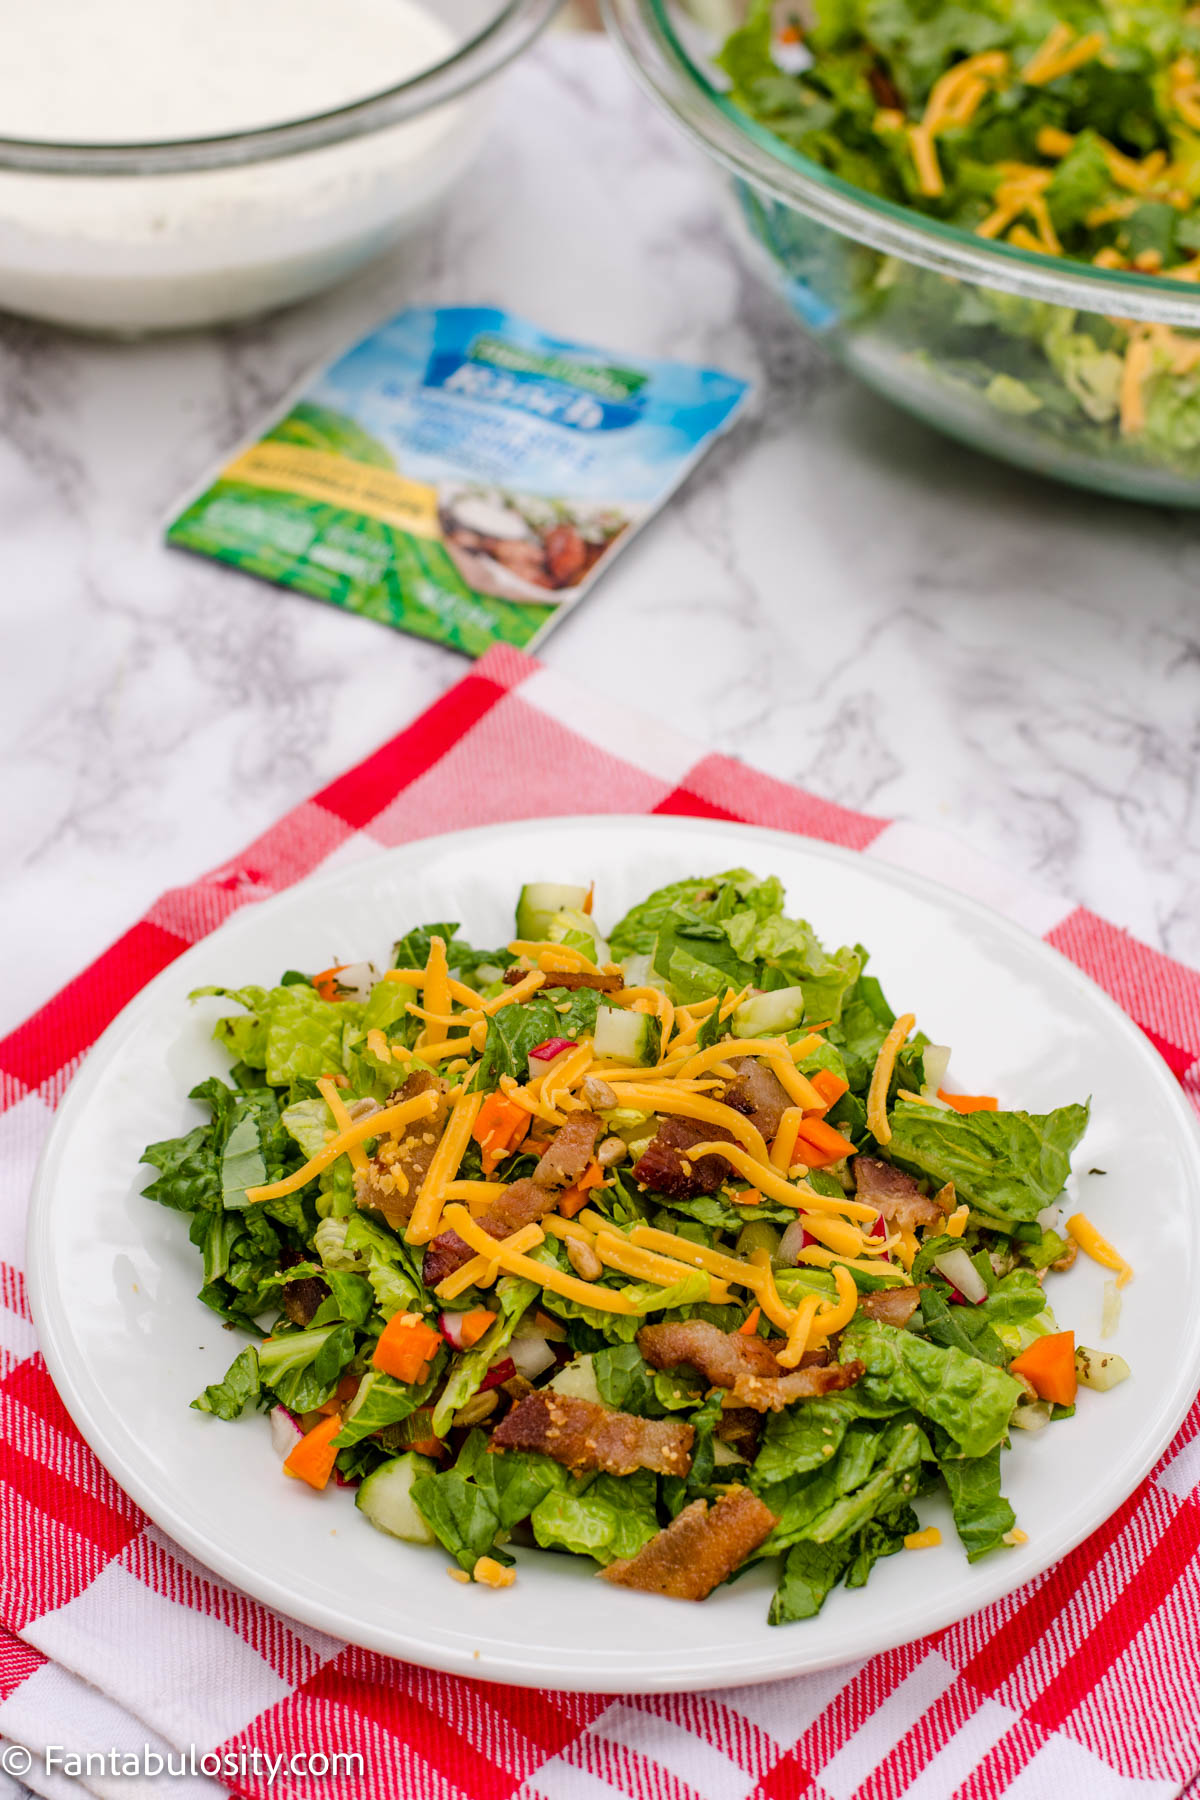 Salad ingredients on plate with dressing on the side